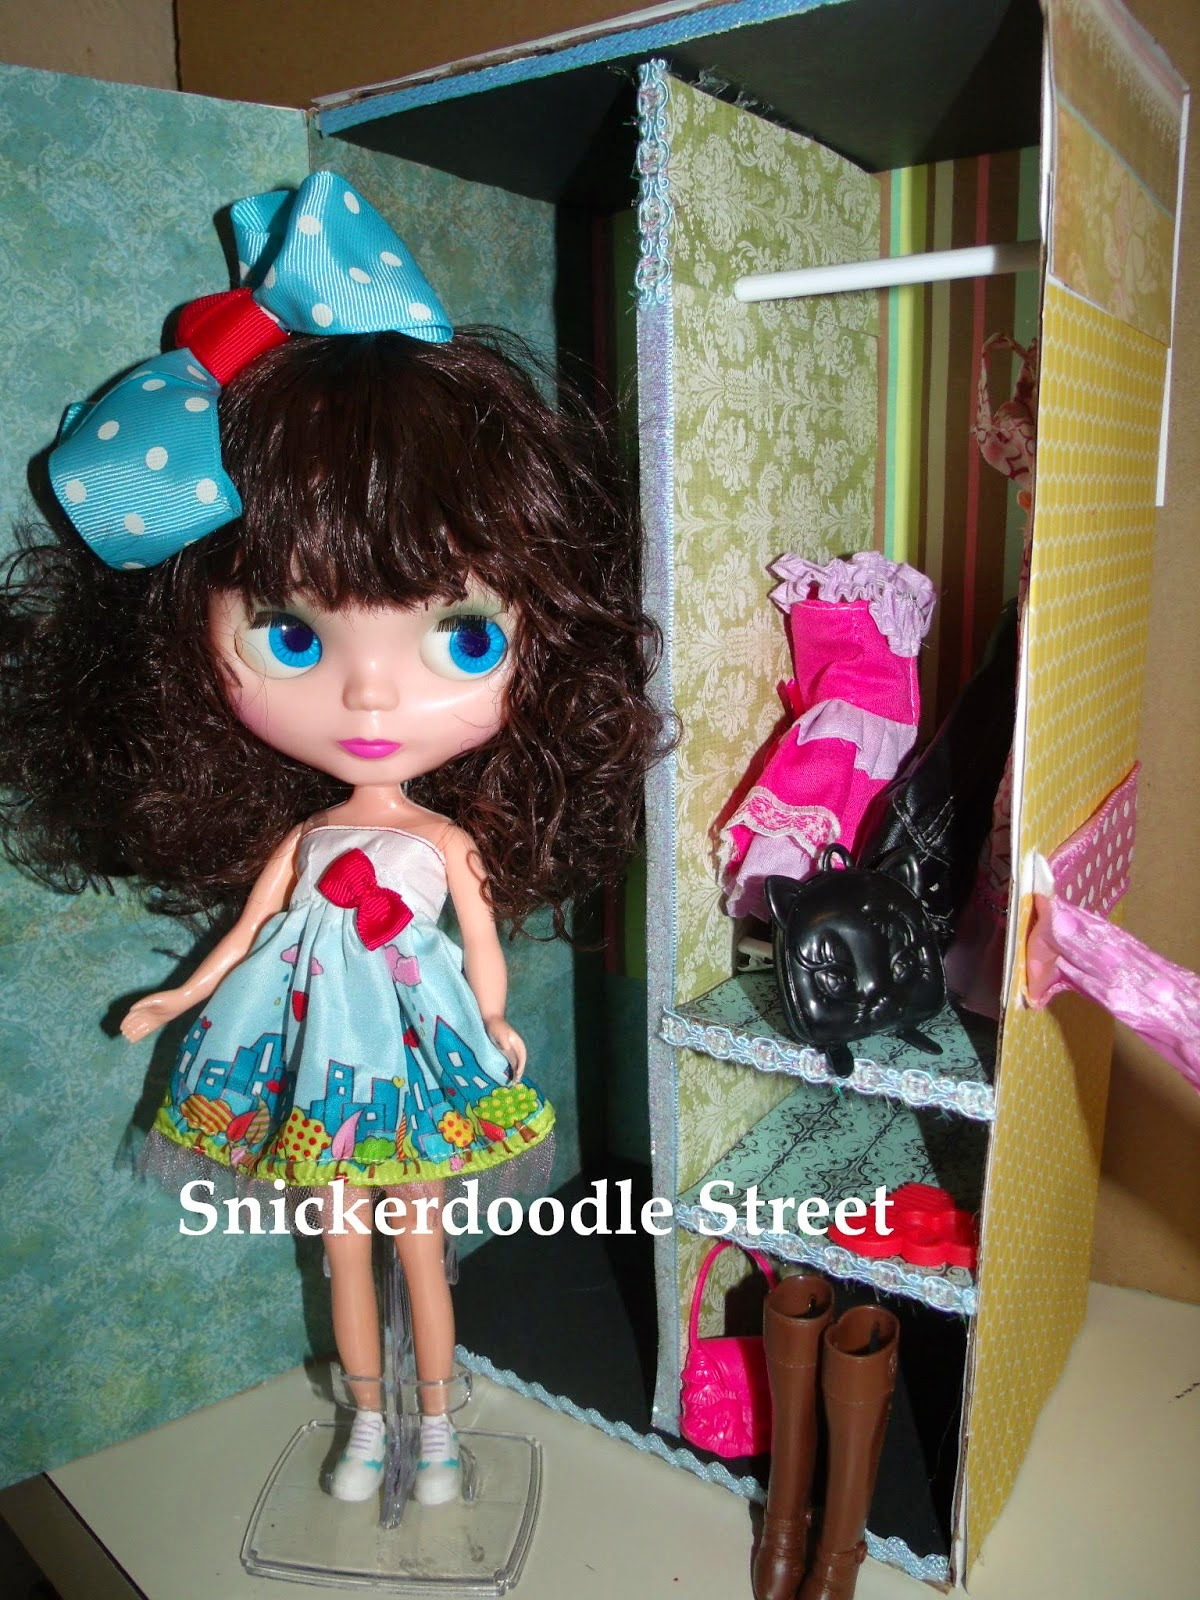 http://snickerdoodlestreet.blogspot.com/2013/07/htm-doll-closet-room-box.html